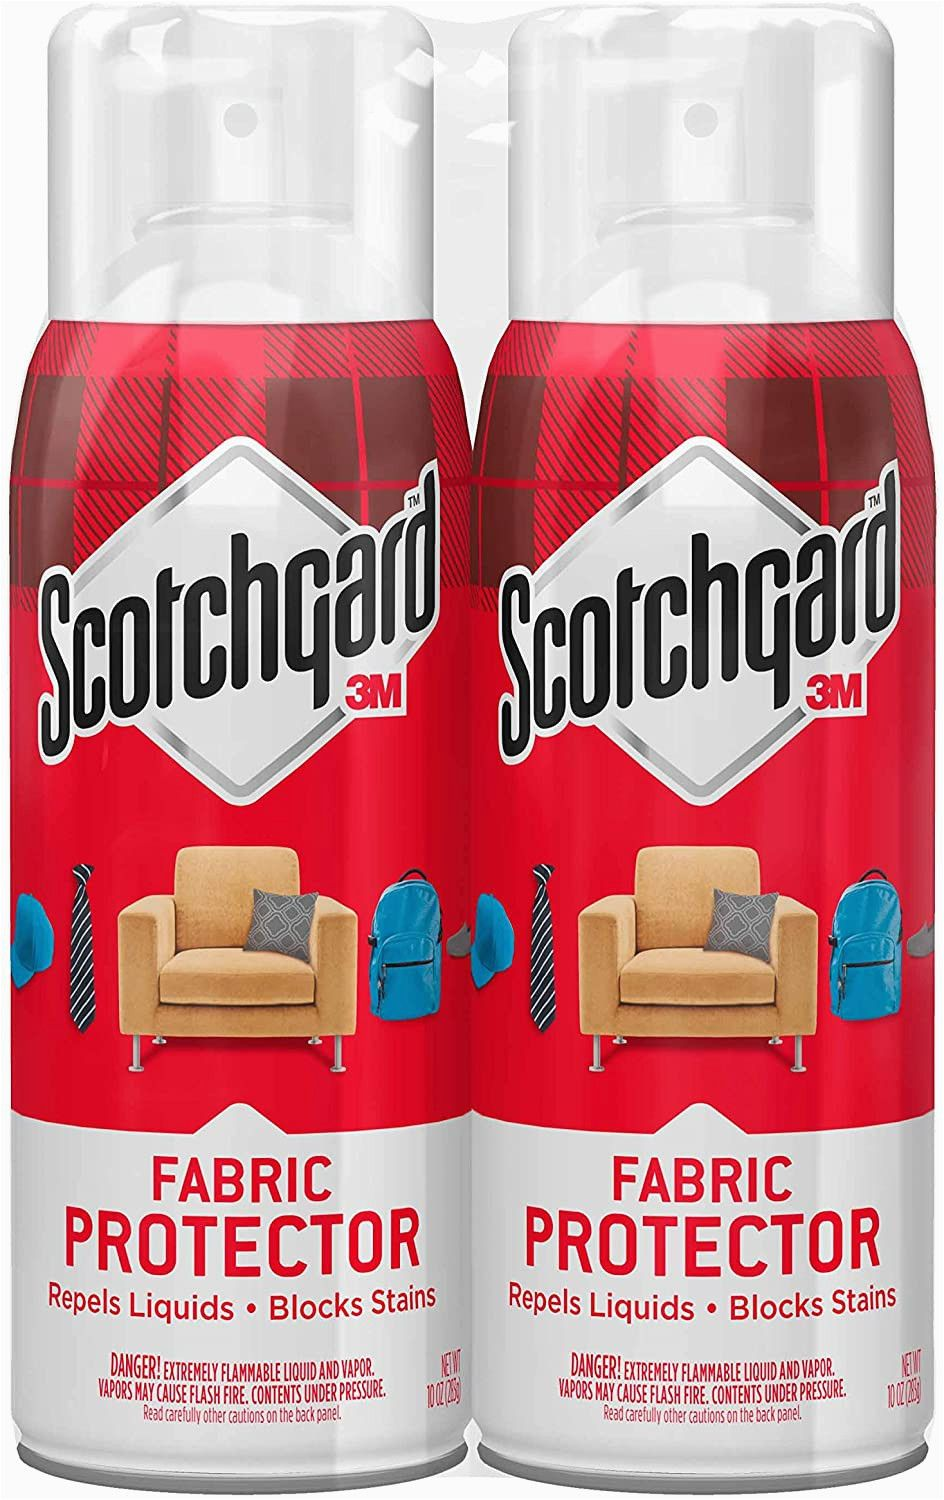 Best Sofa Fabric Protector Fabric Upholstery Protectors Scotchgard Stain Protection